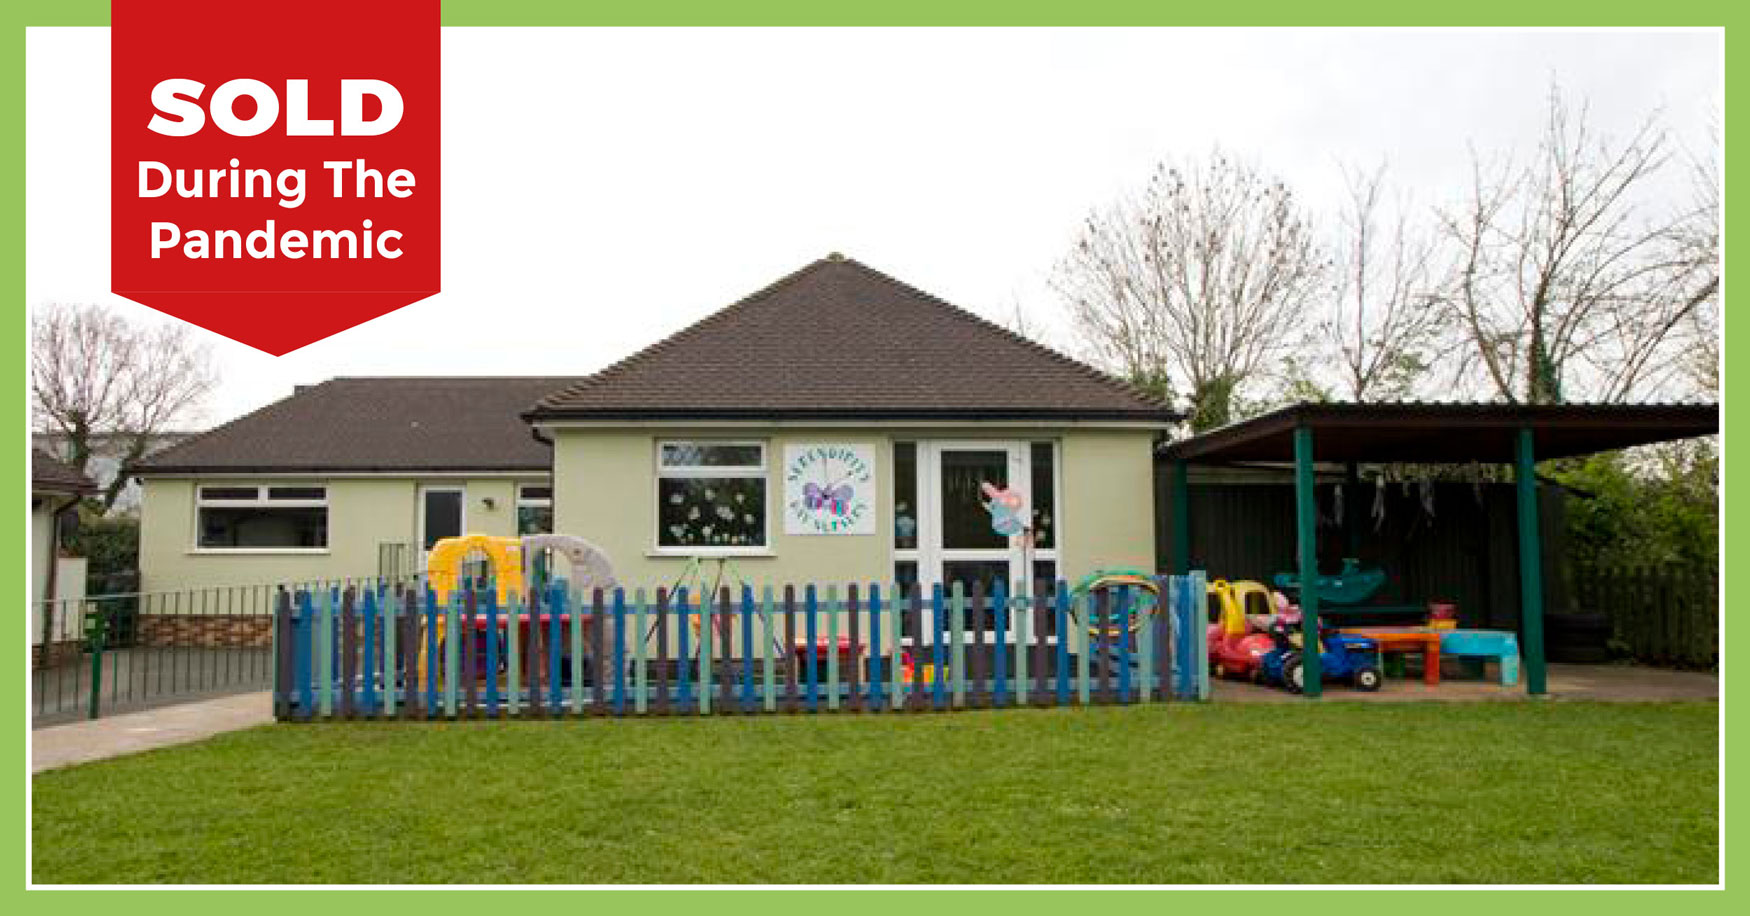 Serendipity Day Nursery Ltd Acquired by Industry Operator